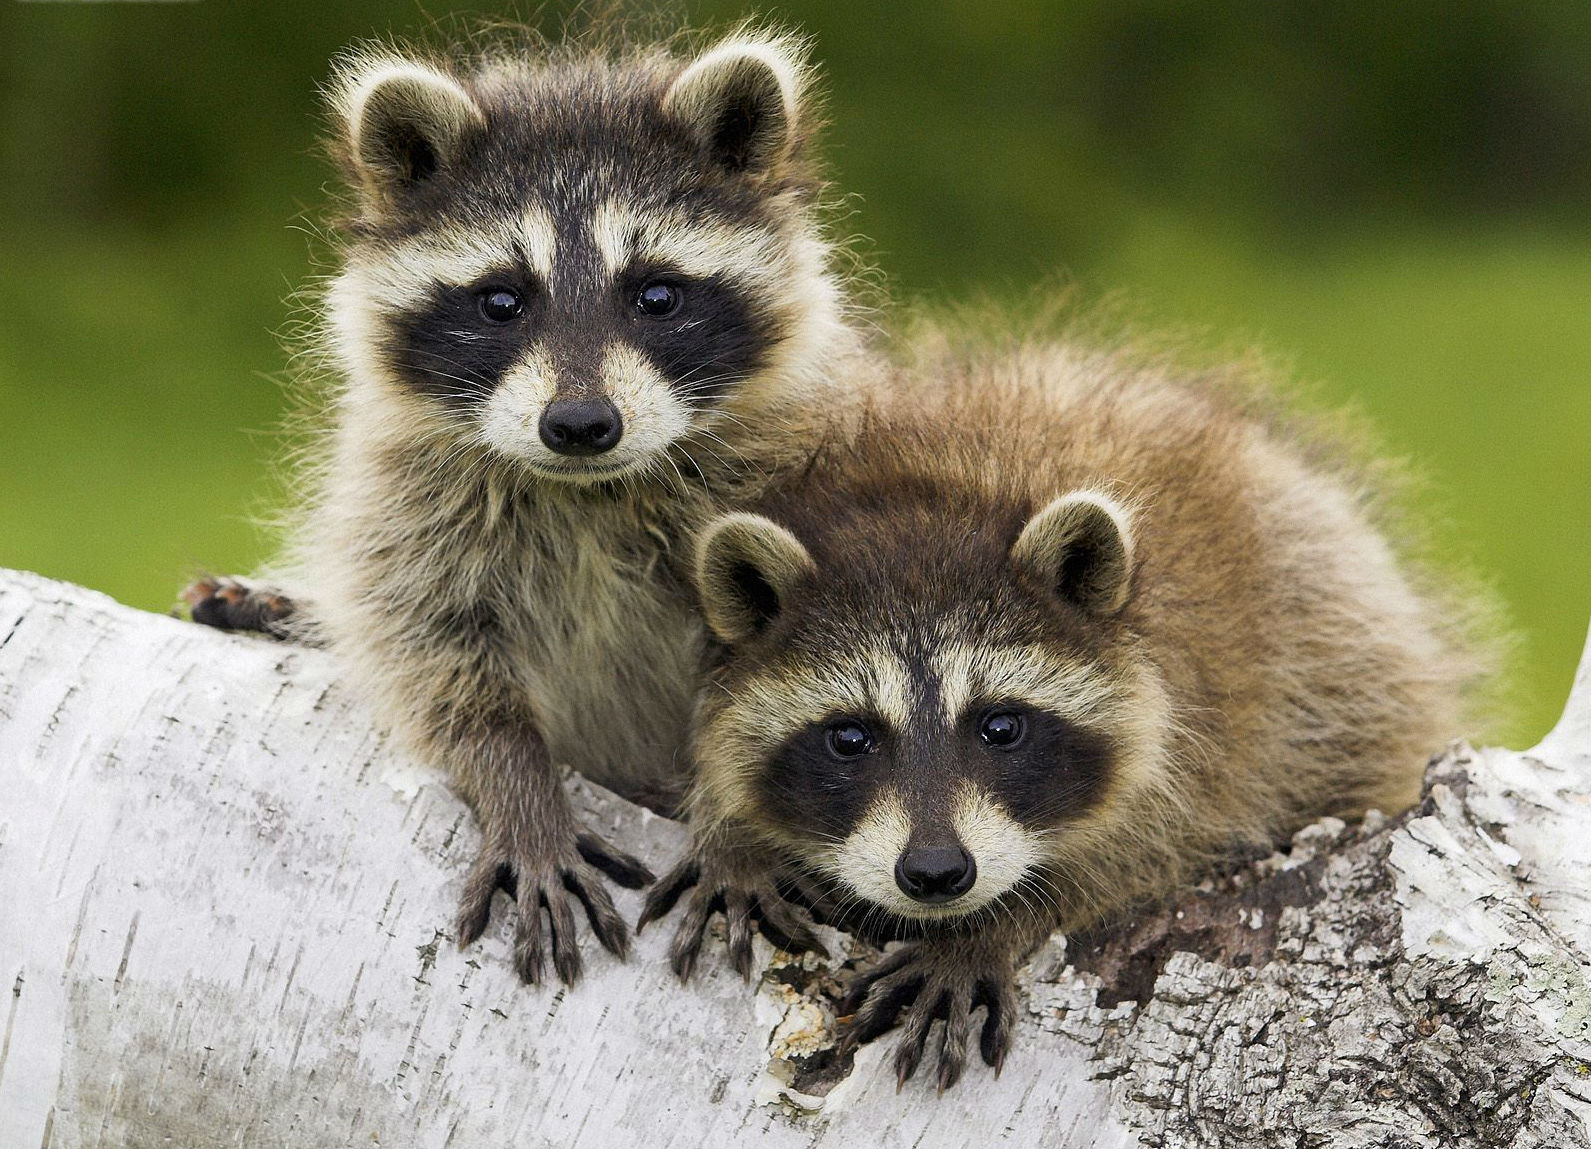 https://i1.wp.com/www.animalcapturewildlifecontrol.com/images/raccoon-babies.jpg